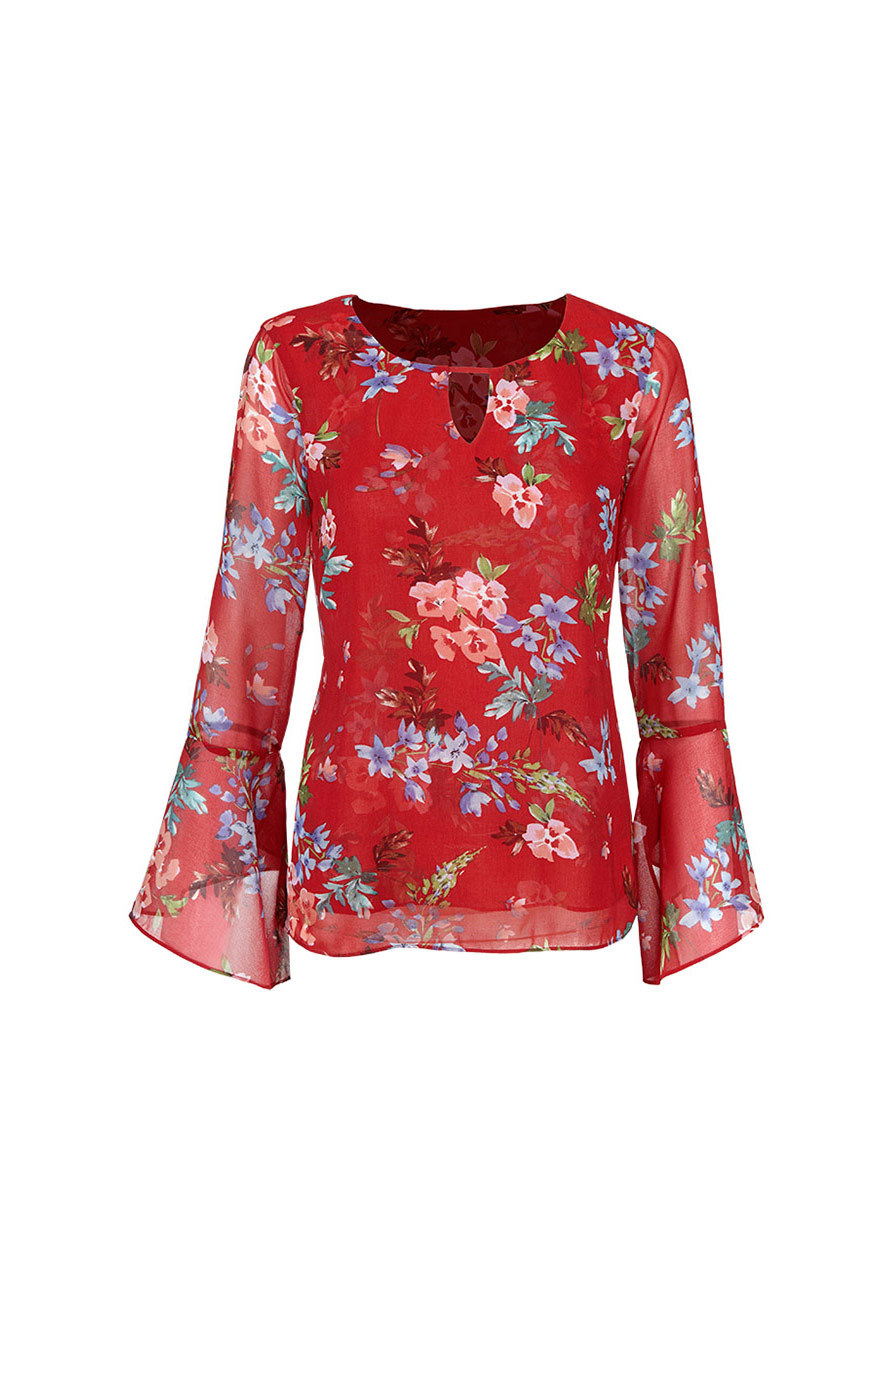 cabi's Devoted Blouse